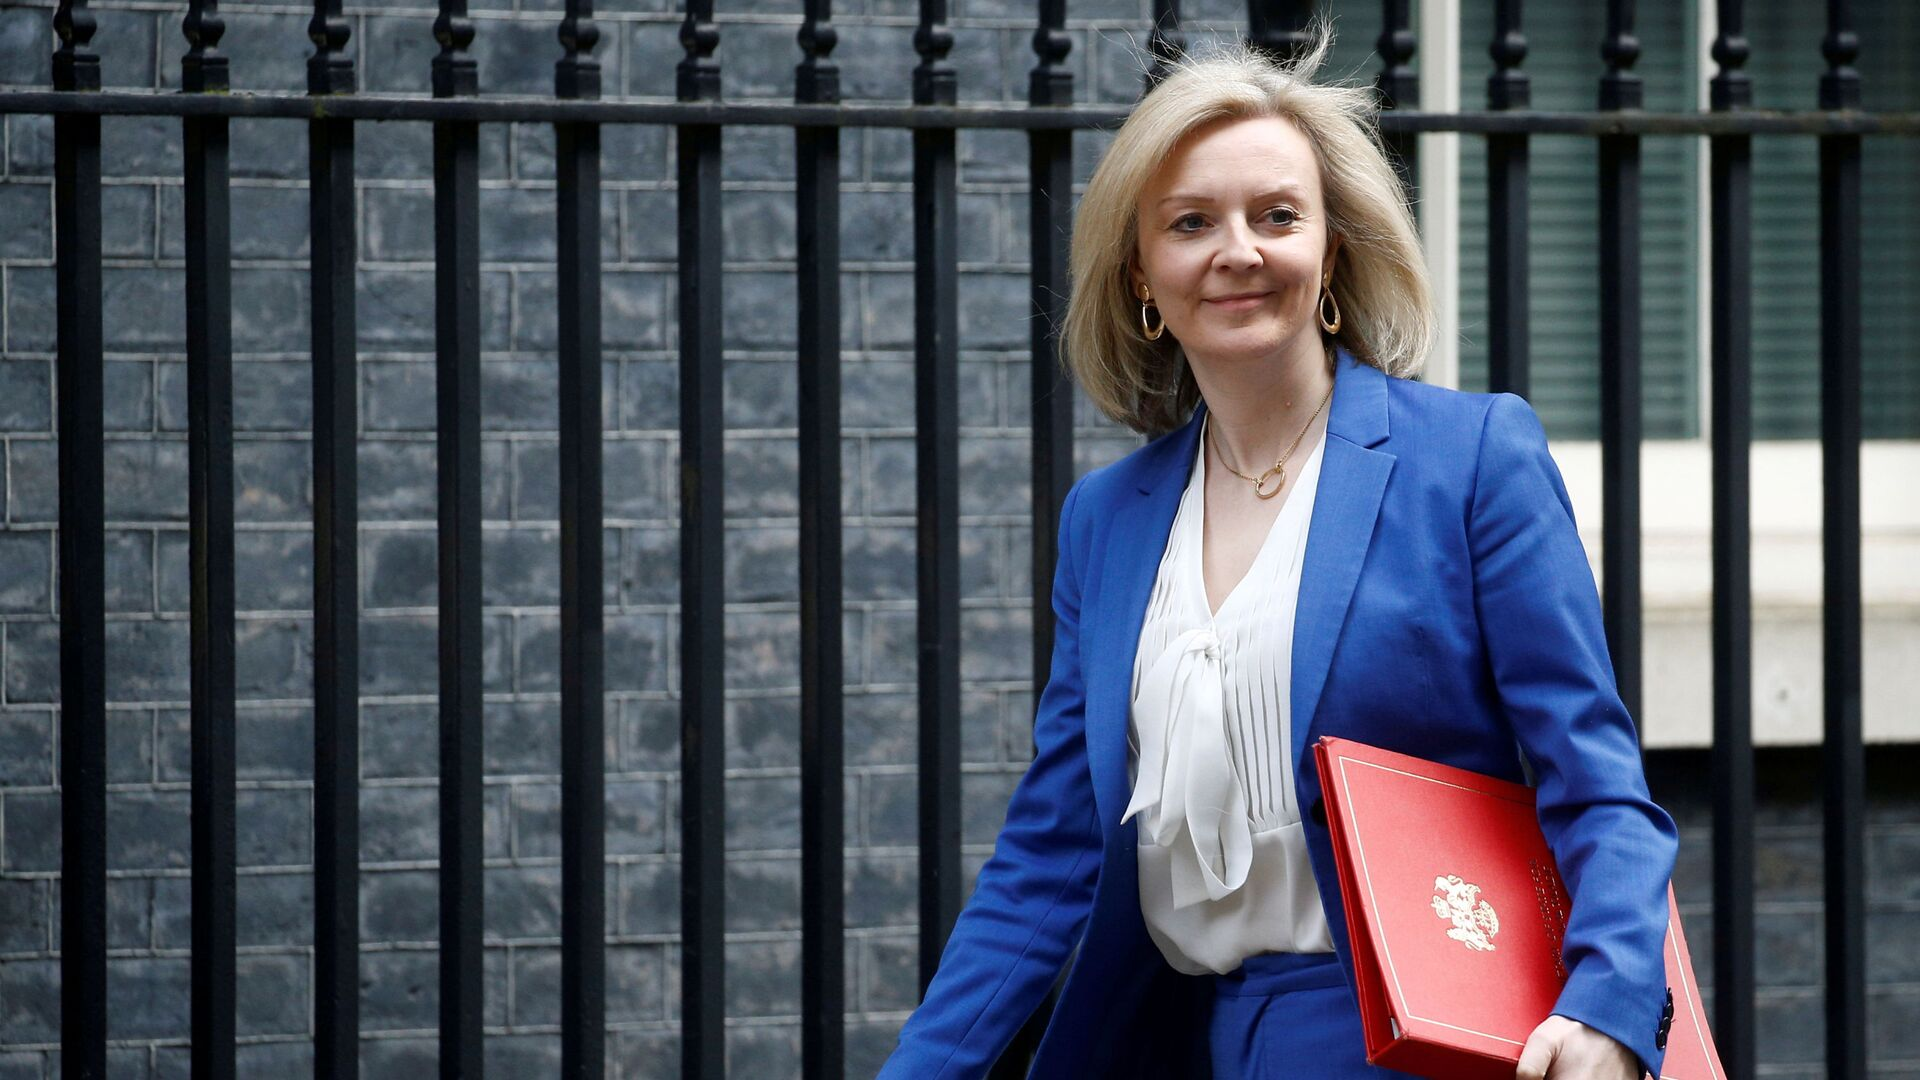 Britain's Secretary of State of International Trade and Minister for Women and Equalities Liz Truss is seen outside Downing Street, in London, Britain March 17, 2020. - Sputnik International, 1920, 19.09.2021